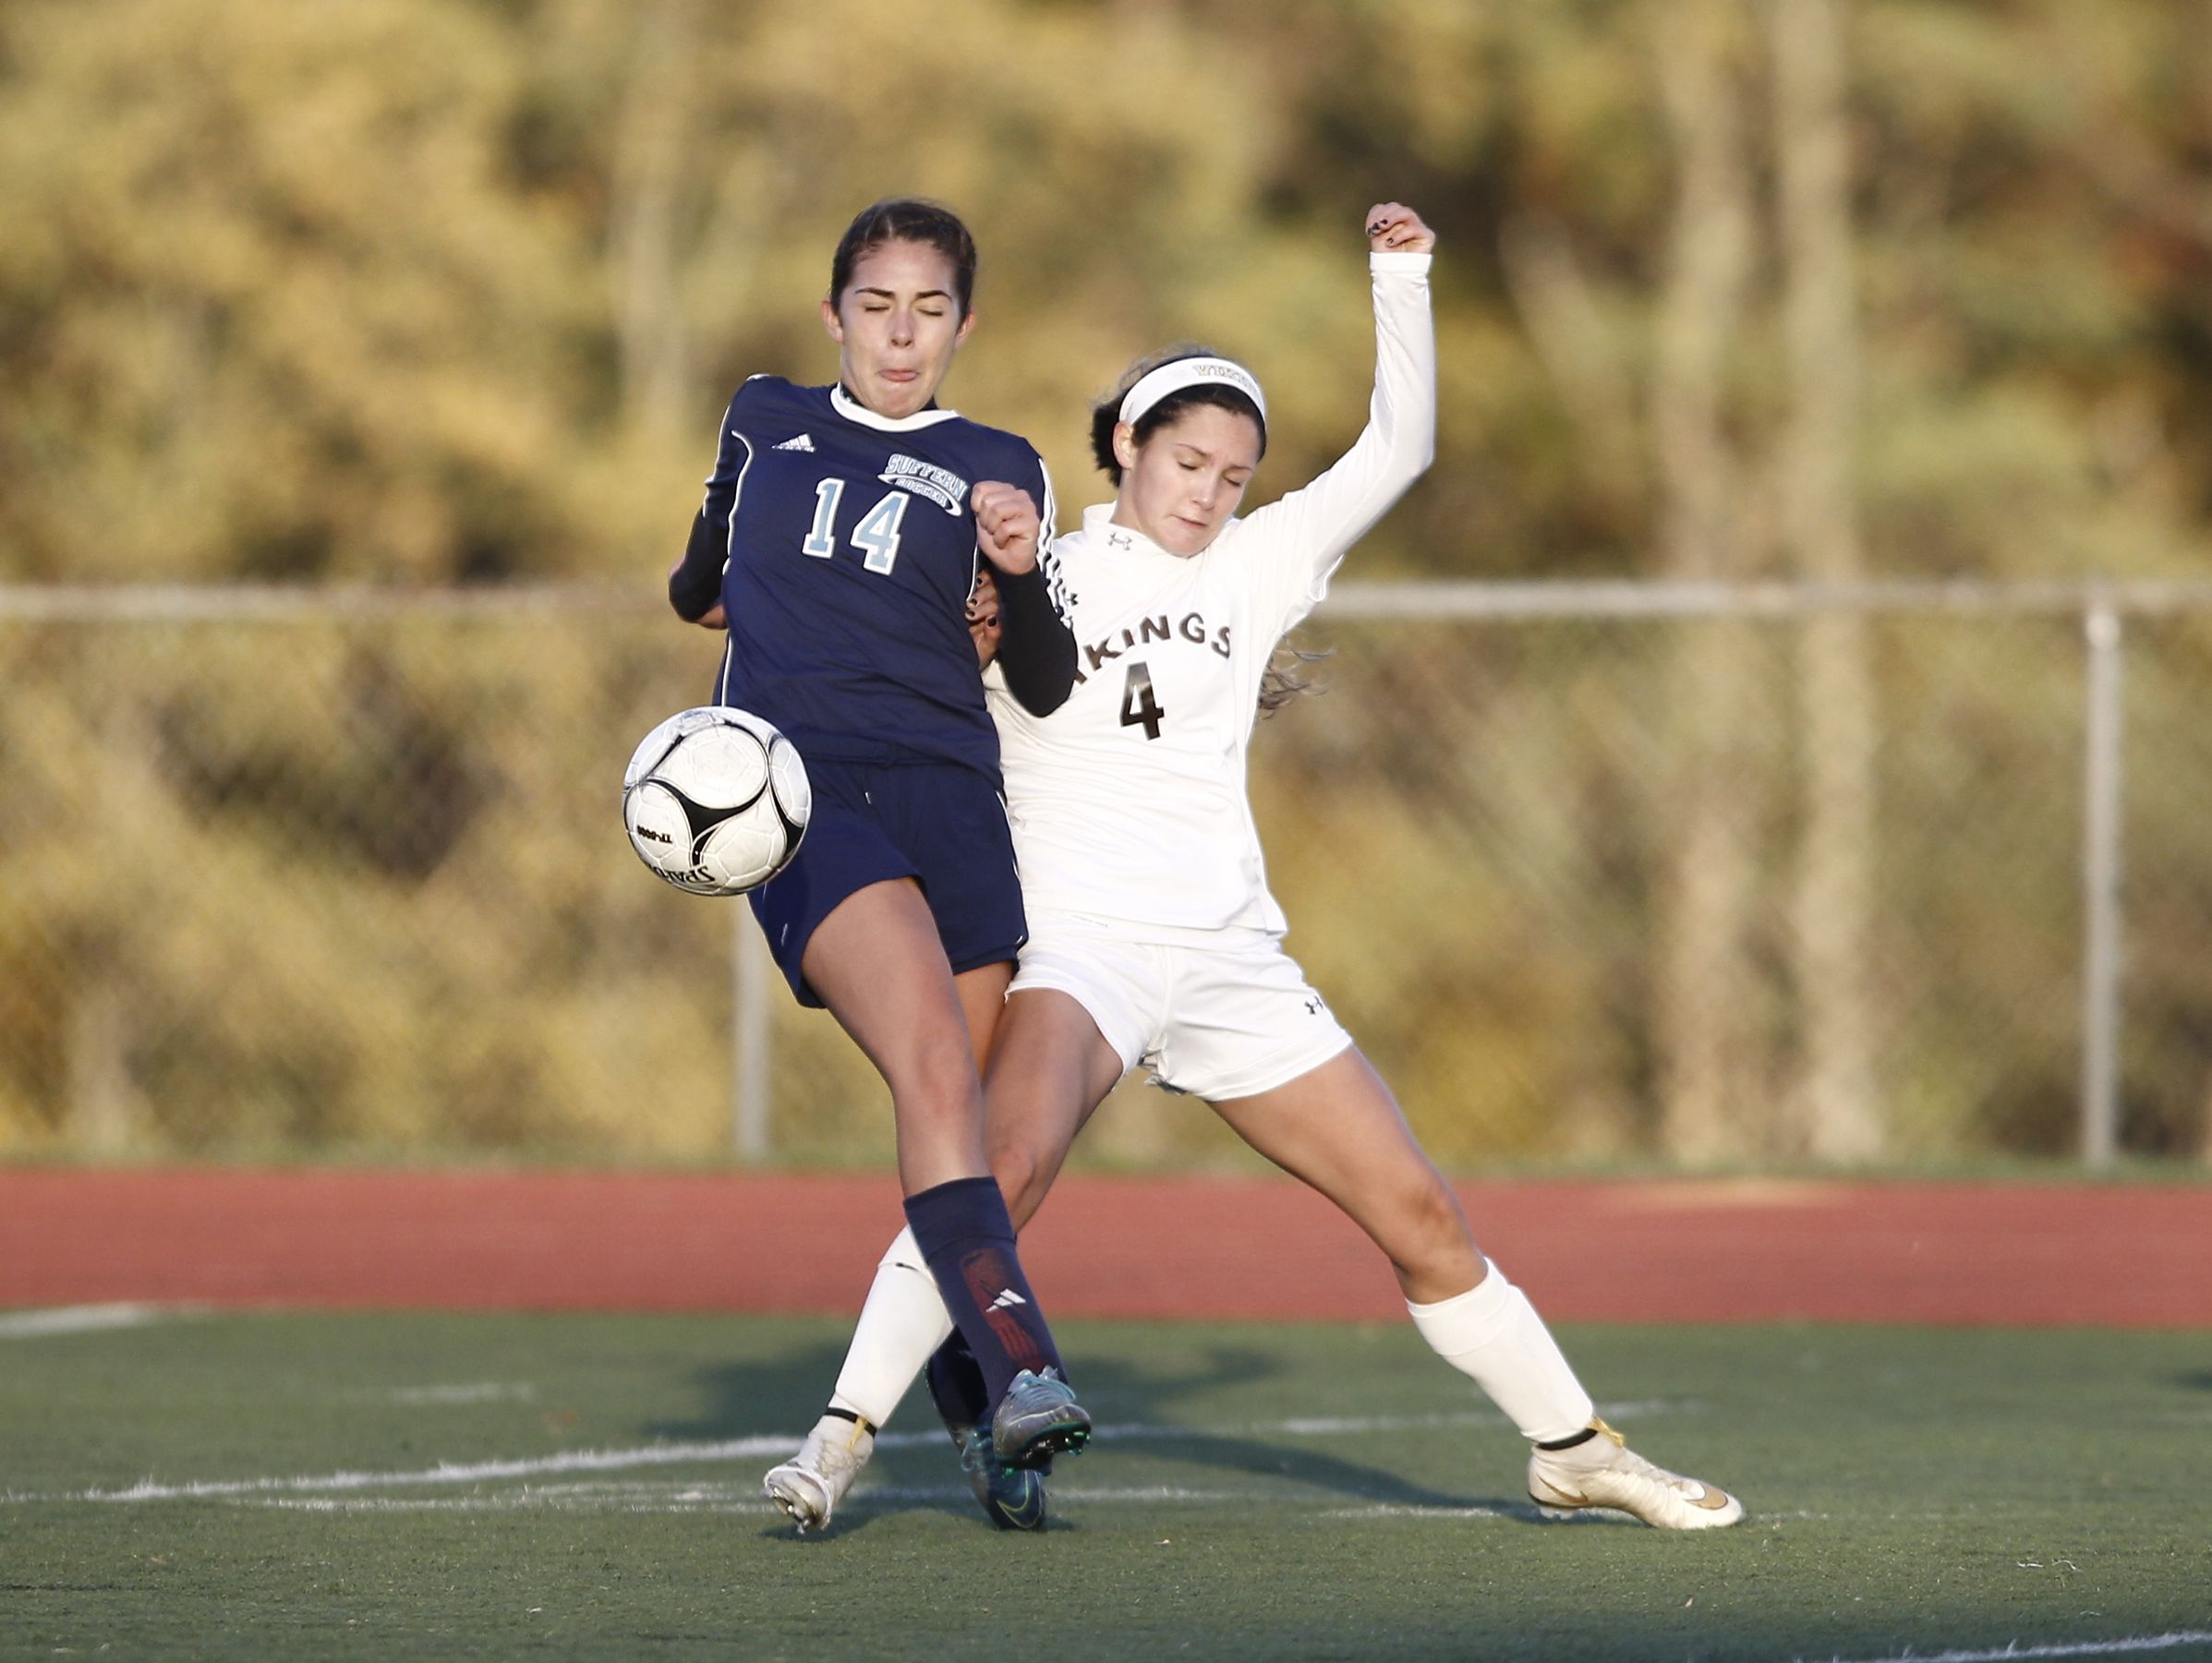 Suffern's Tatiana Cruz (14) and Clarkstown South's Fiona Cummings (4) battle for possession during girls Class AA soccer quarterfinal at Clarkstown High School South in West Nyack on Tuesday, October 25, 2016. Suffern advances with their 2-0 win.